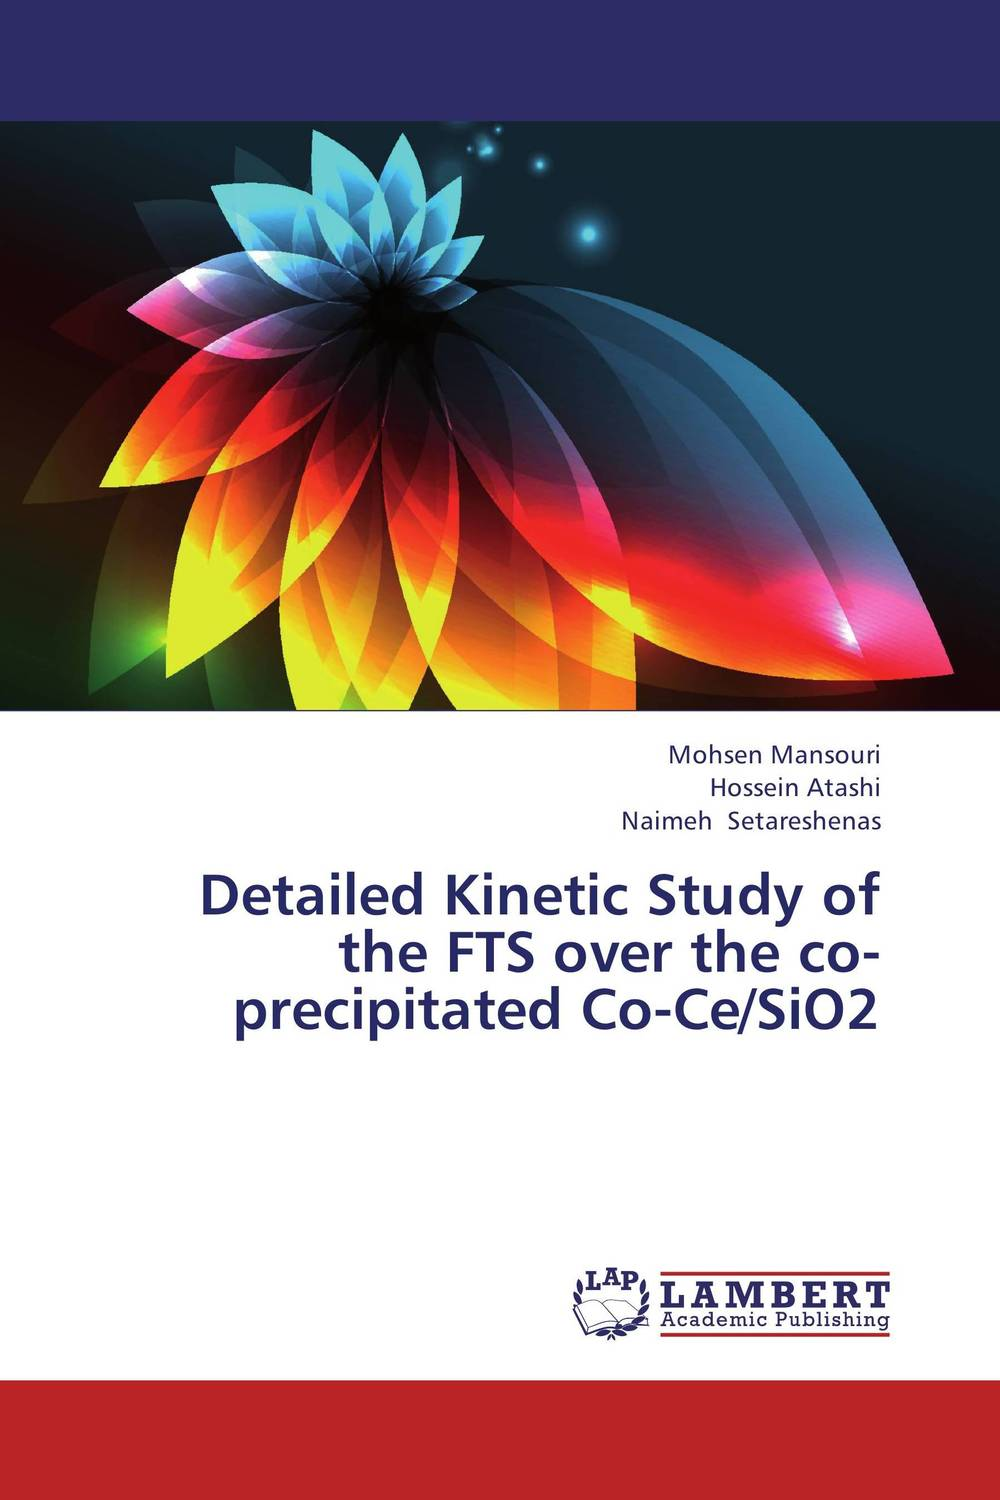 Detailed Kinetic Study of the FTS over the co-precipitated Co-Ce/SiO2 topperr 1133 fts 6e